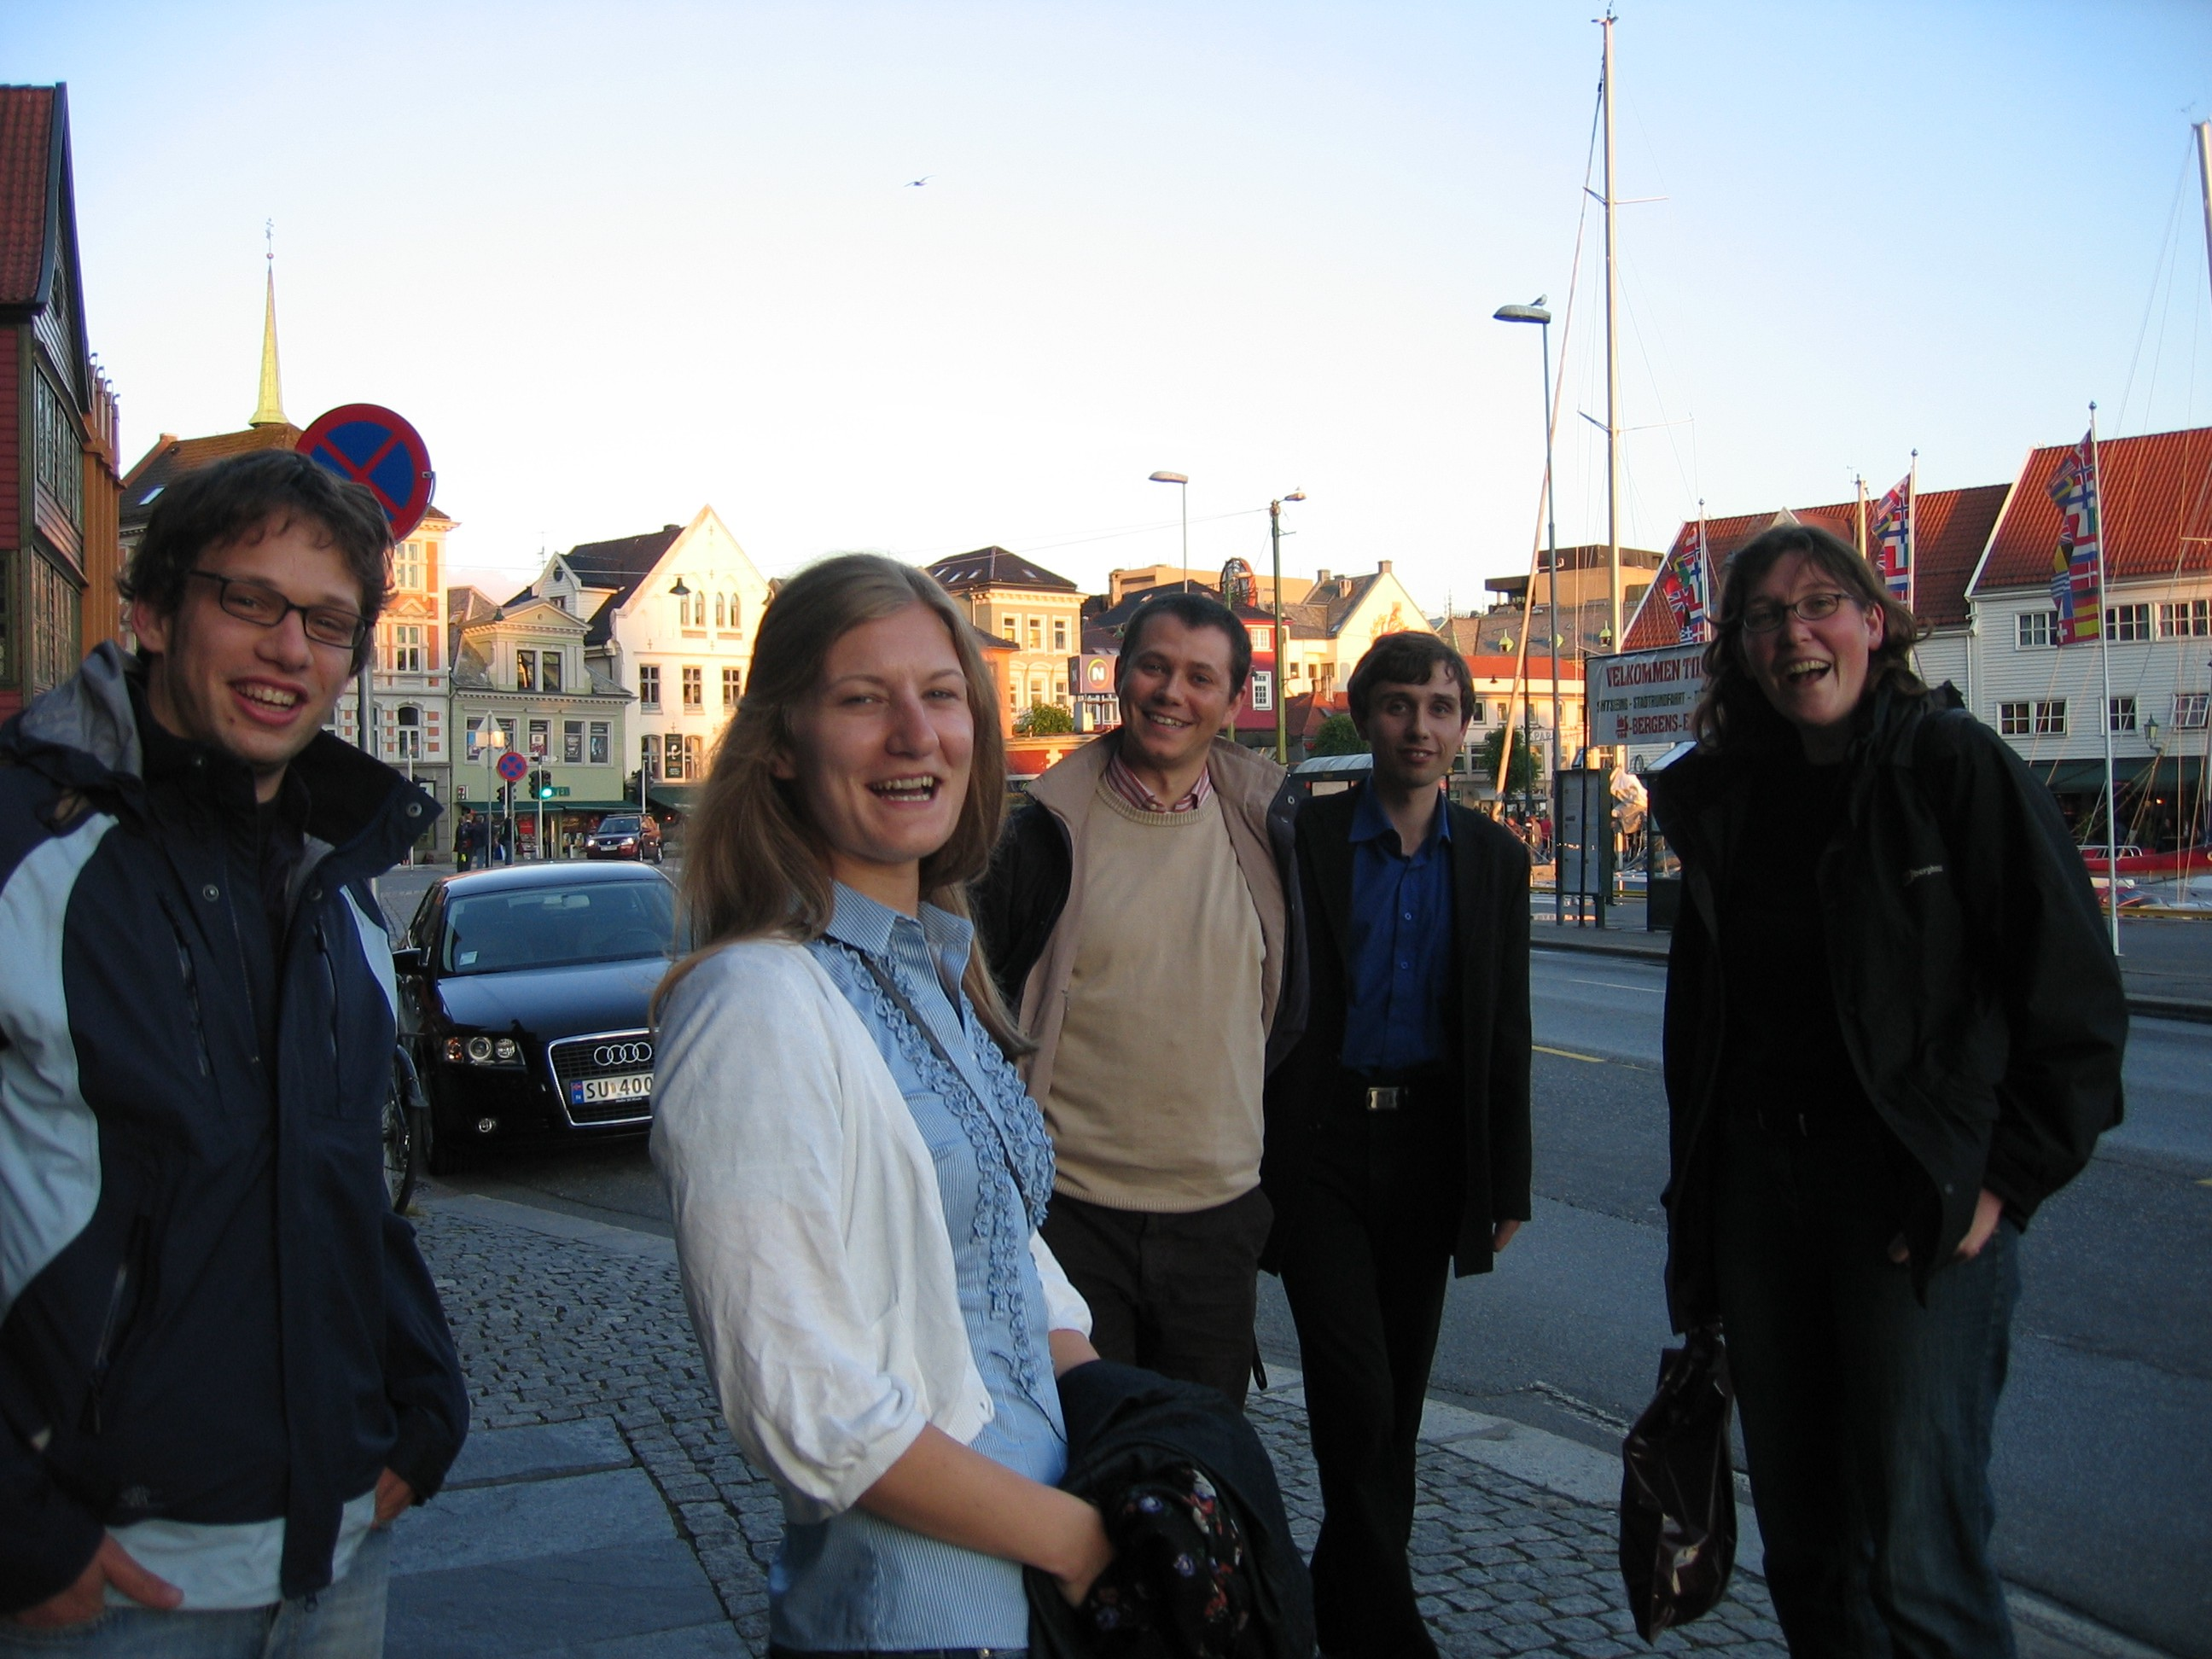 Relaxing at Bryggen.  From left: Wouter Heyndrickx, Elaine Olsson, Giovanni Occhipinti, Yury Minenkov, and Natalie Fey (Univ. of Bristol).